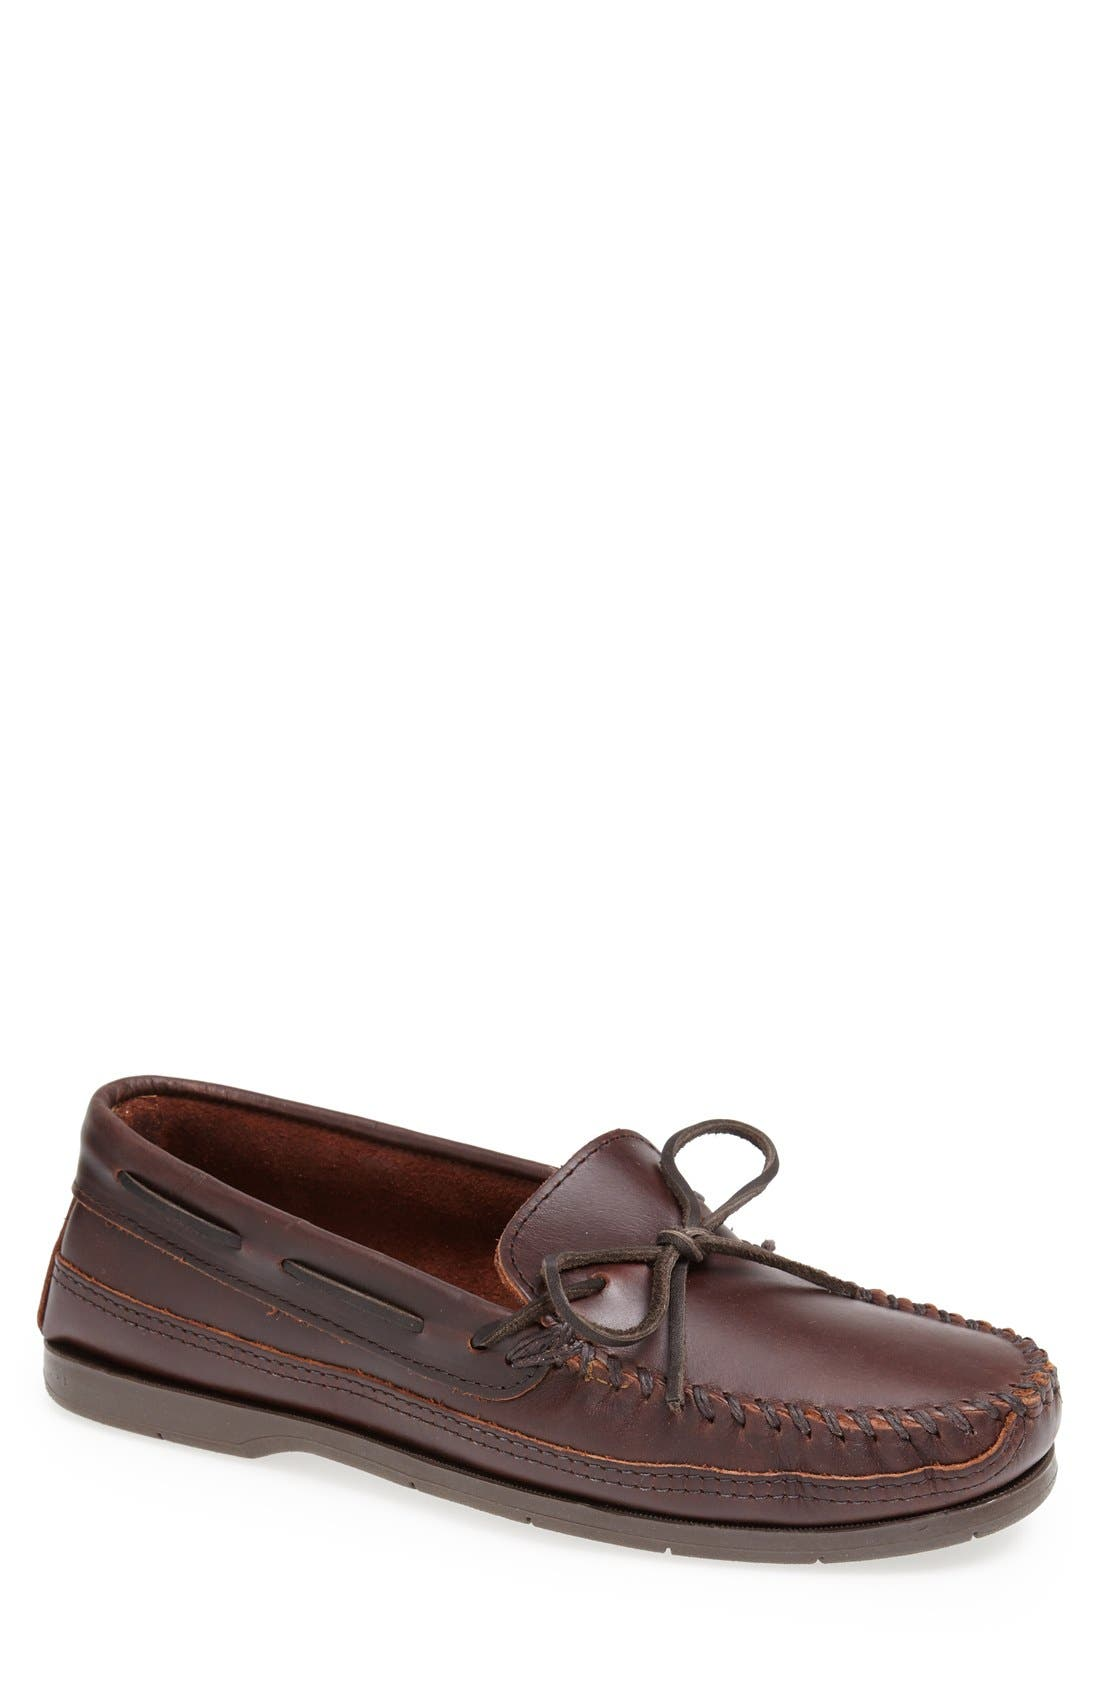 Double Sole Moccasin,                             Main thumbnail 1, color,                             BROWN